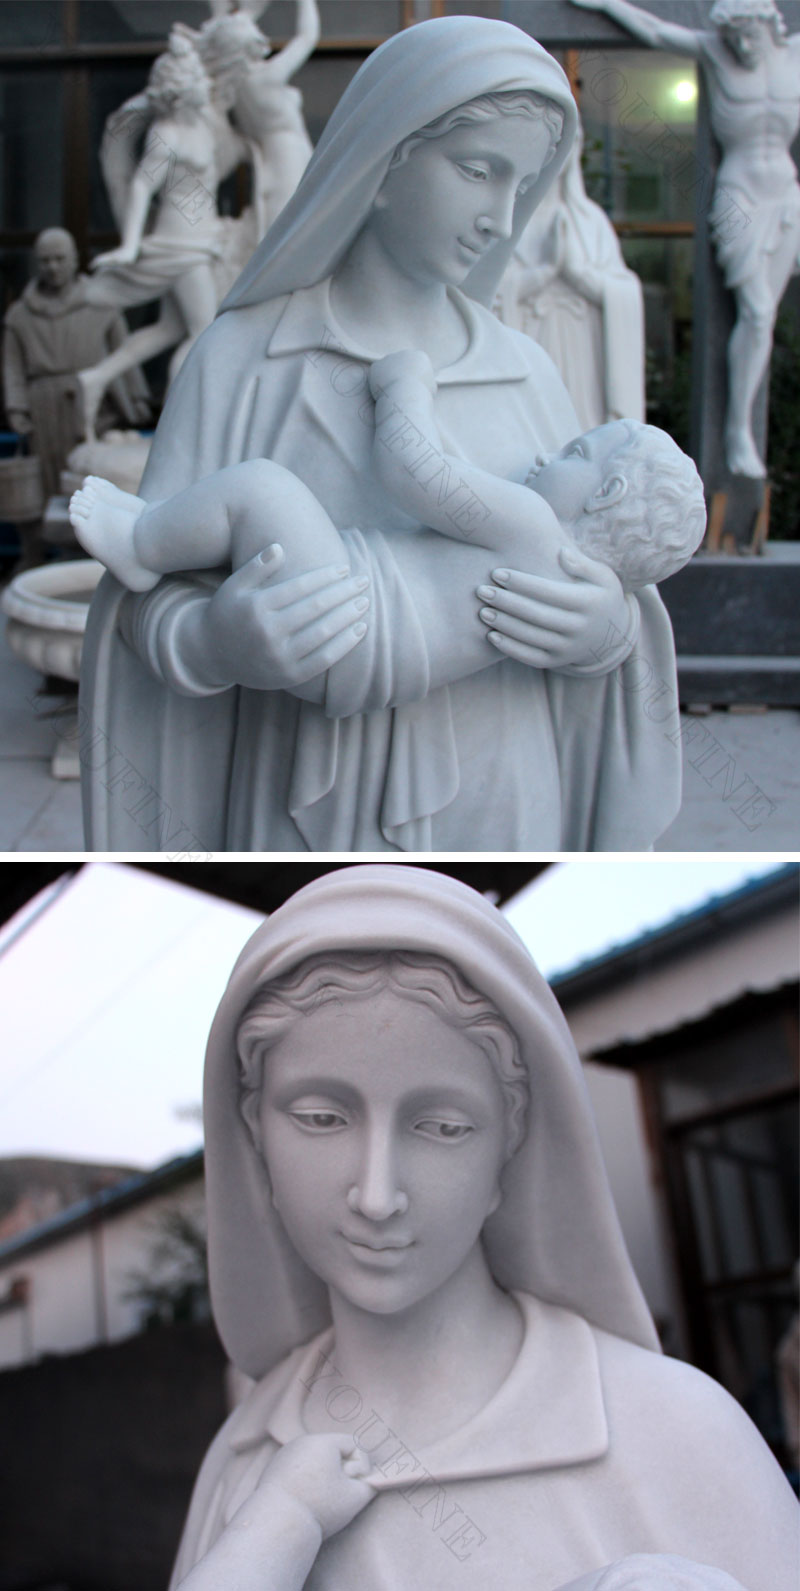 Mother virgin mary with baby jesus statues for church outdoor decor details